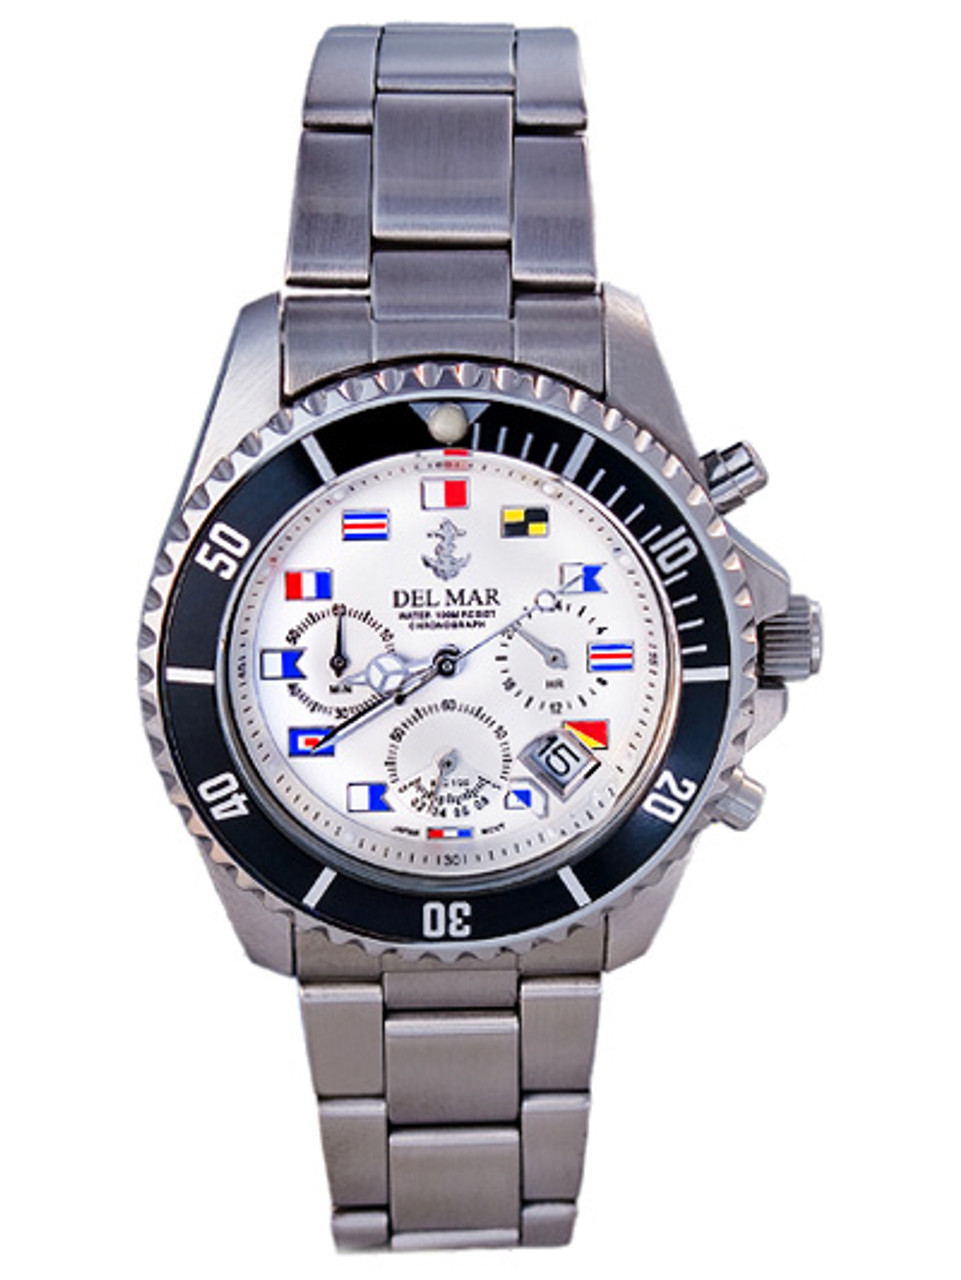 Del Mar Men's 200M Chronograph Nautical Flag Dial Watch - White Face